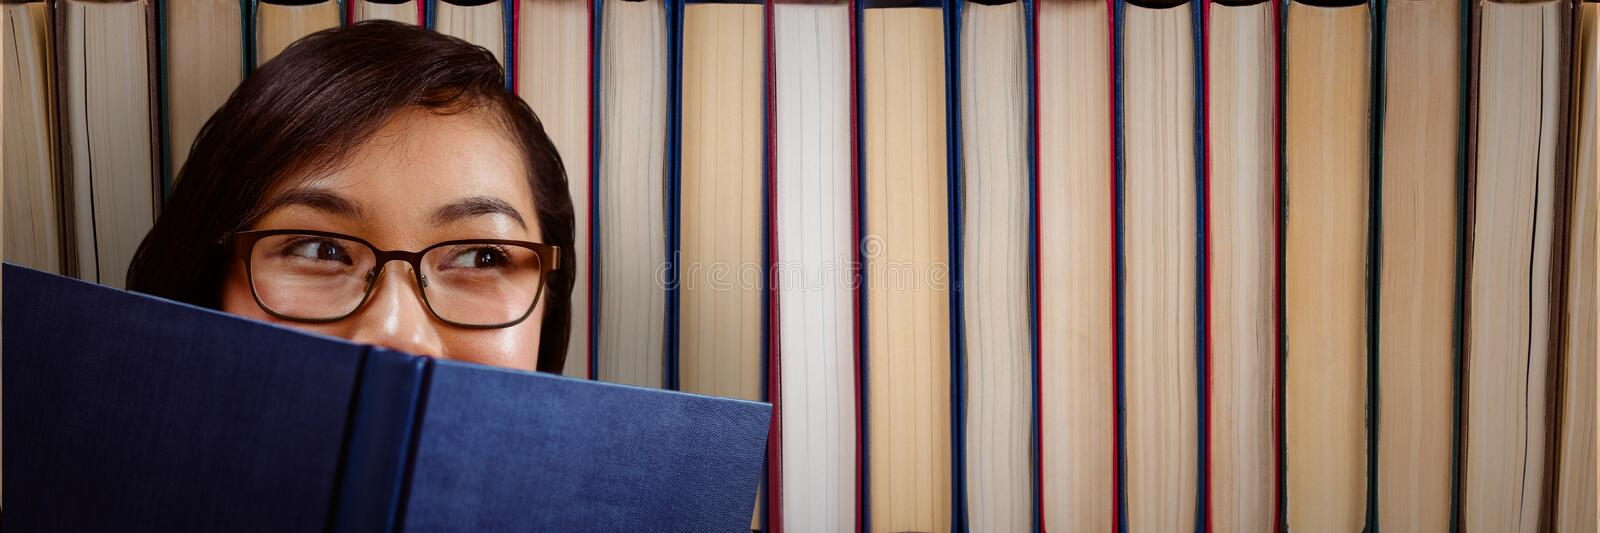 Young woman with a book looking right in front of books royalty free stock images